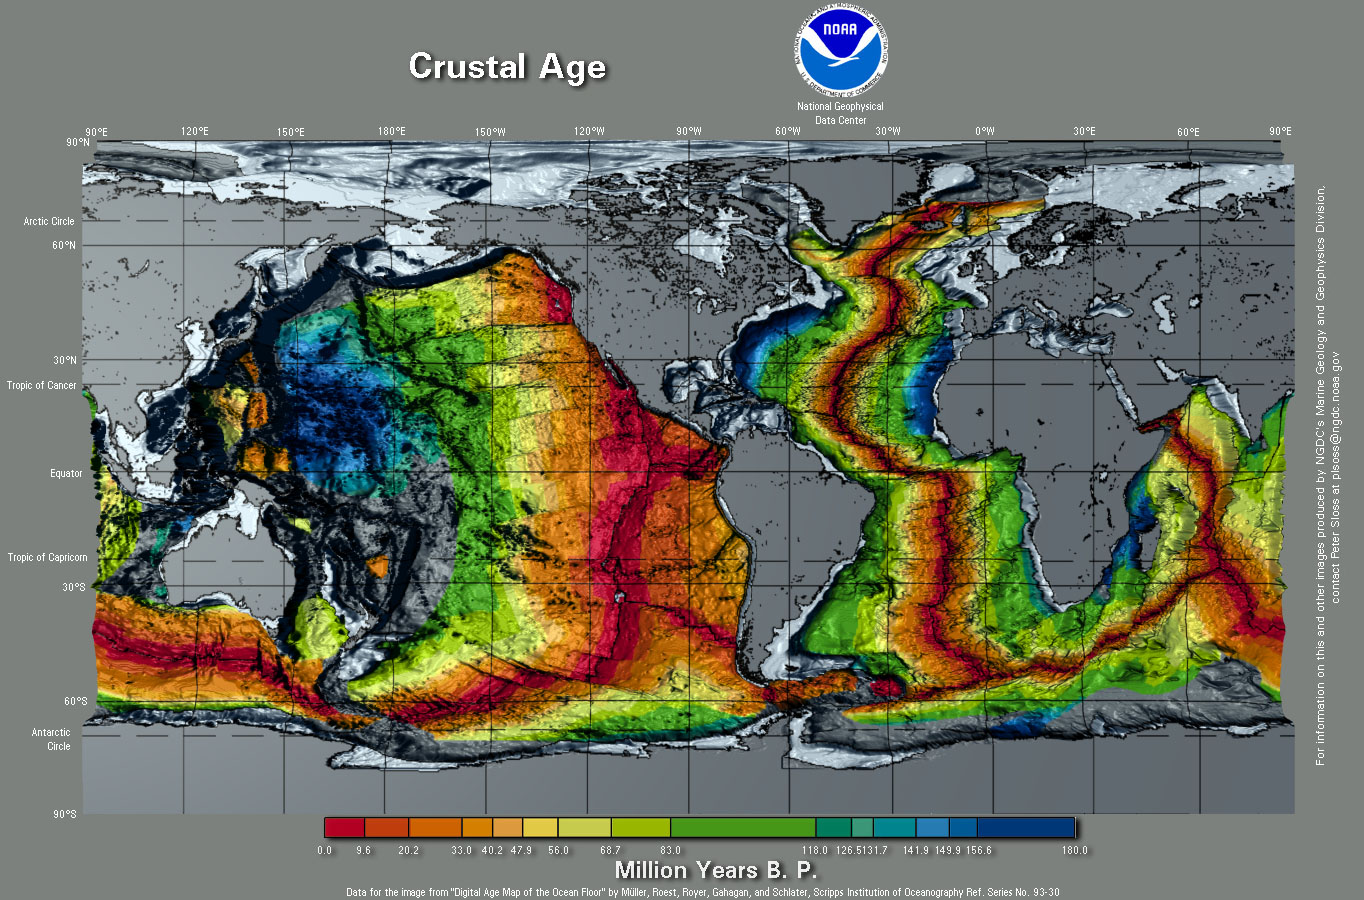 Graphic Of Crustal Ages Either Side Of The Mid Atlantic Ridge